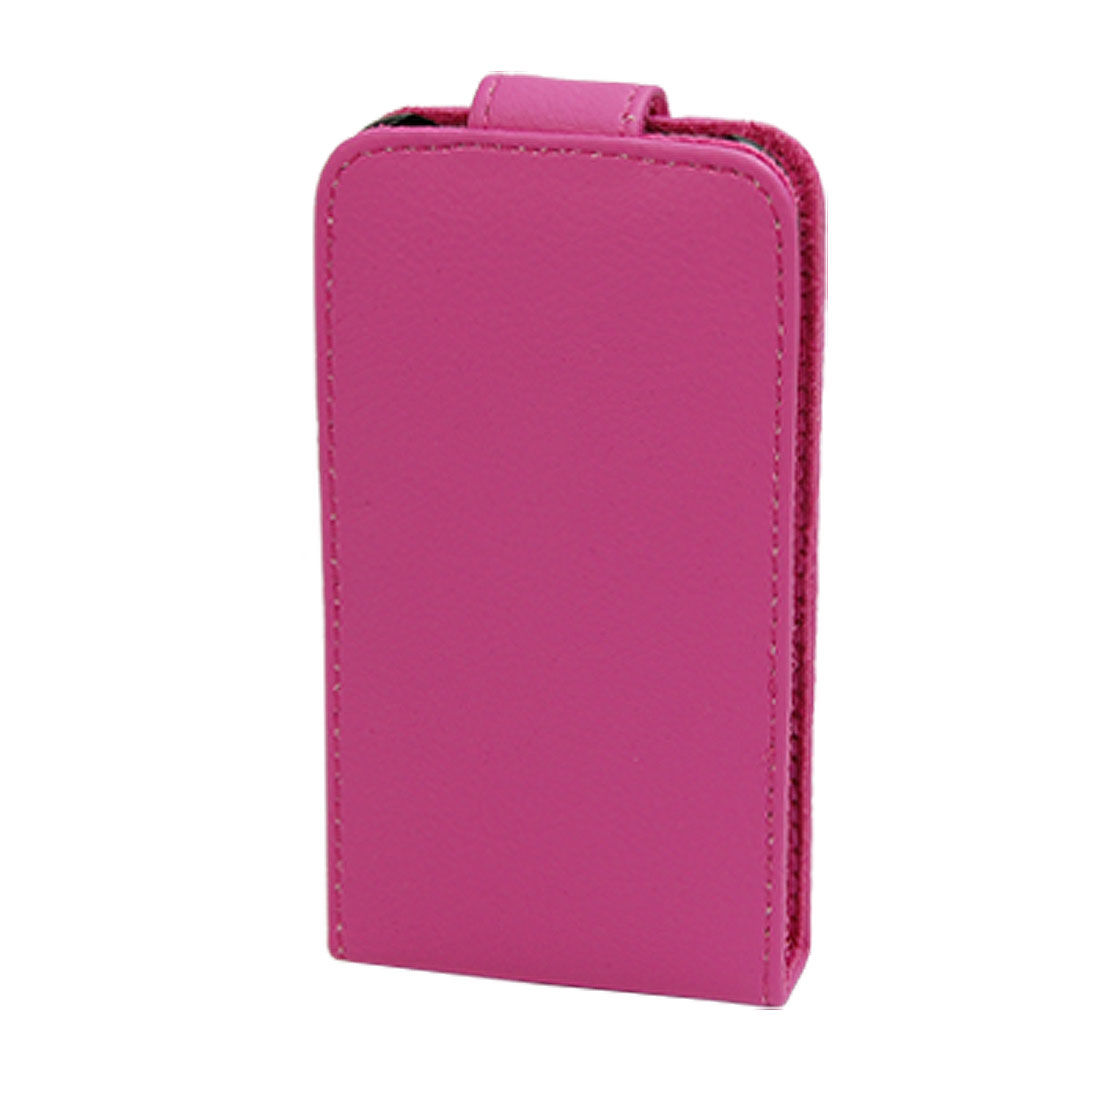 Leather Pouch Back Case for Apple iPhone 3G Fuchsia